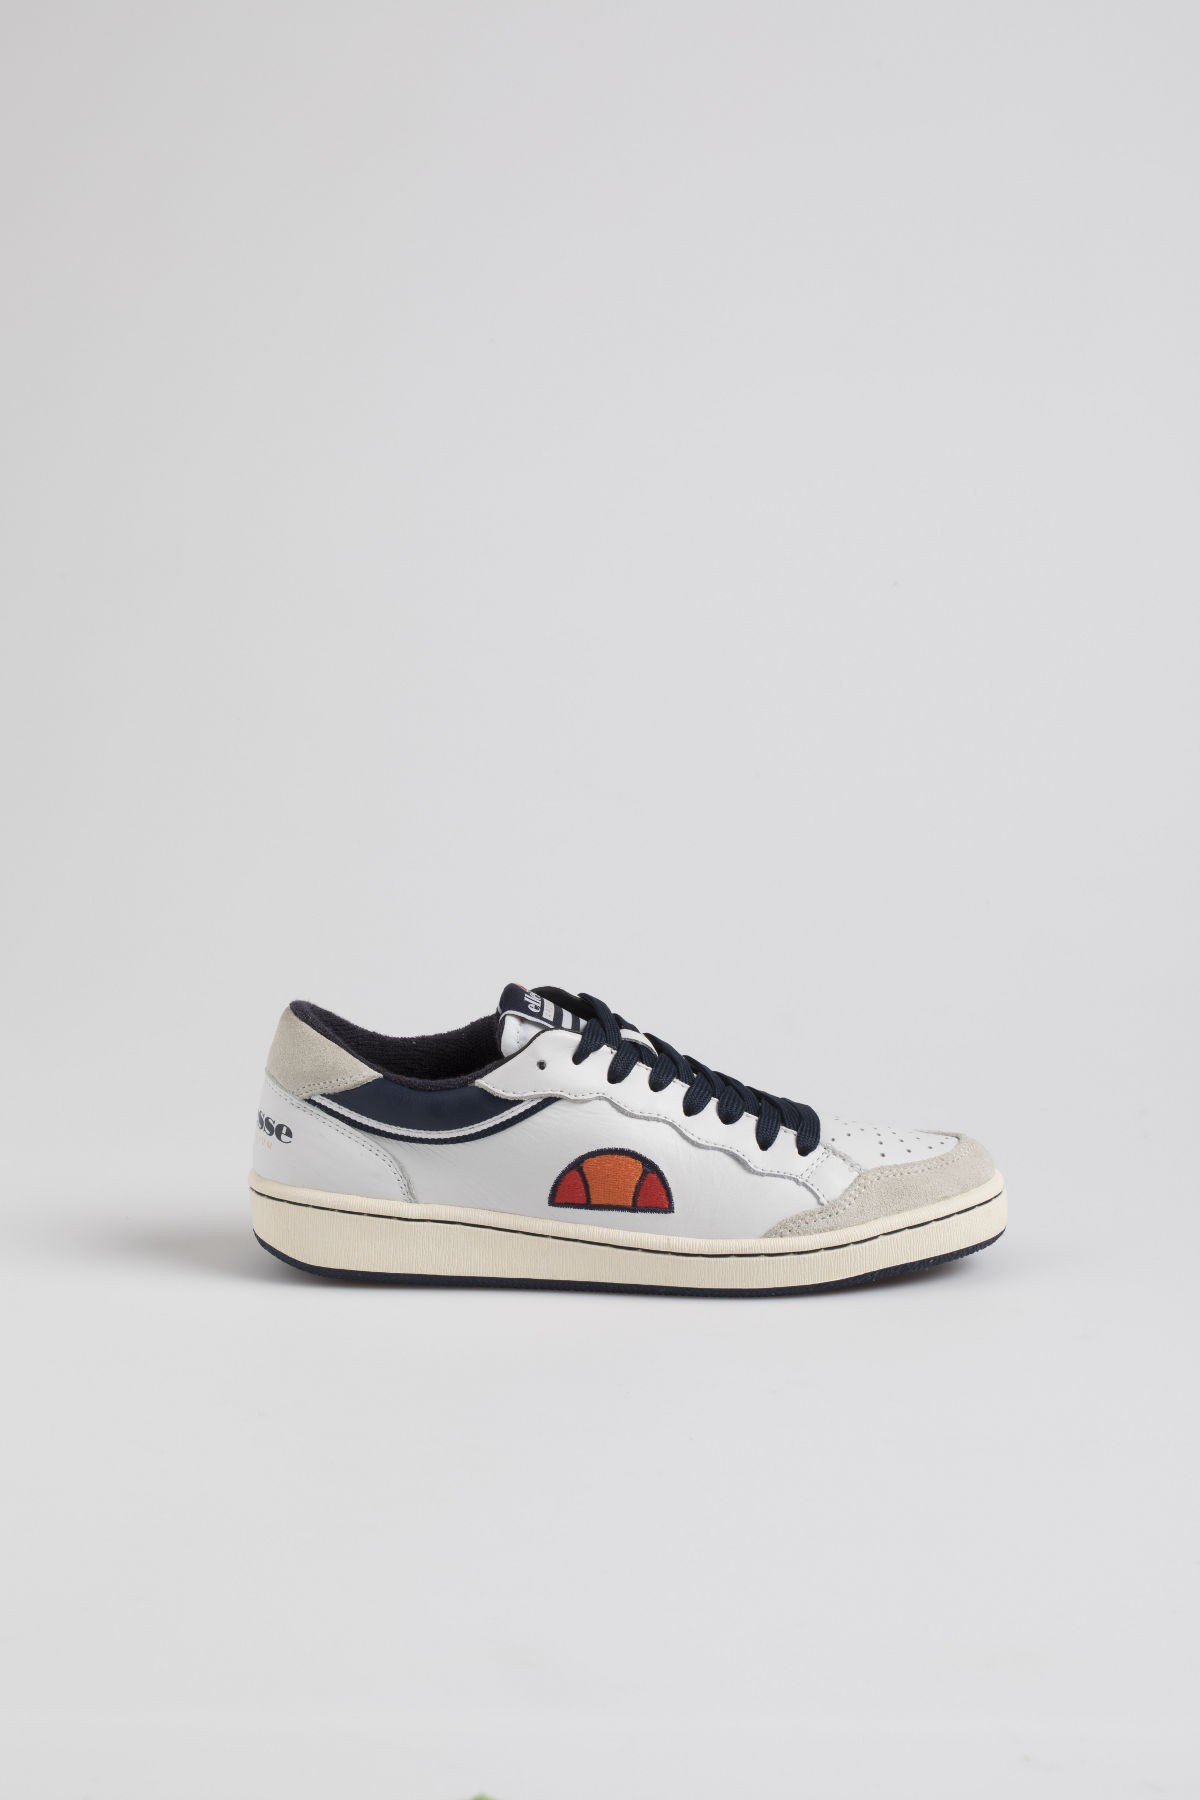 lowest price a504c f1f2a Shoes for man ELLESSE S/S 18